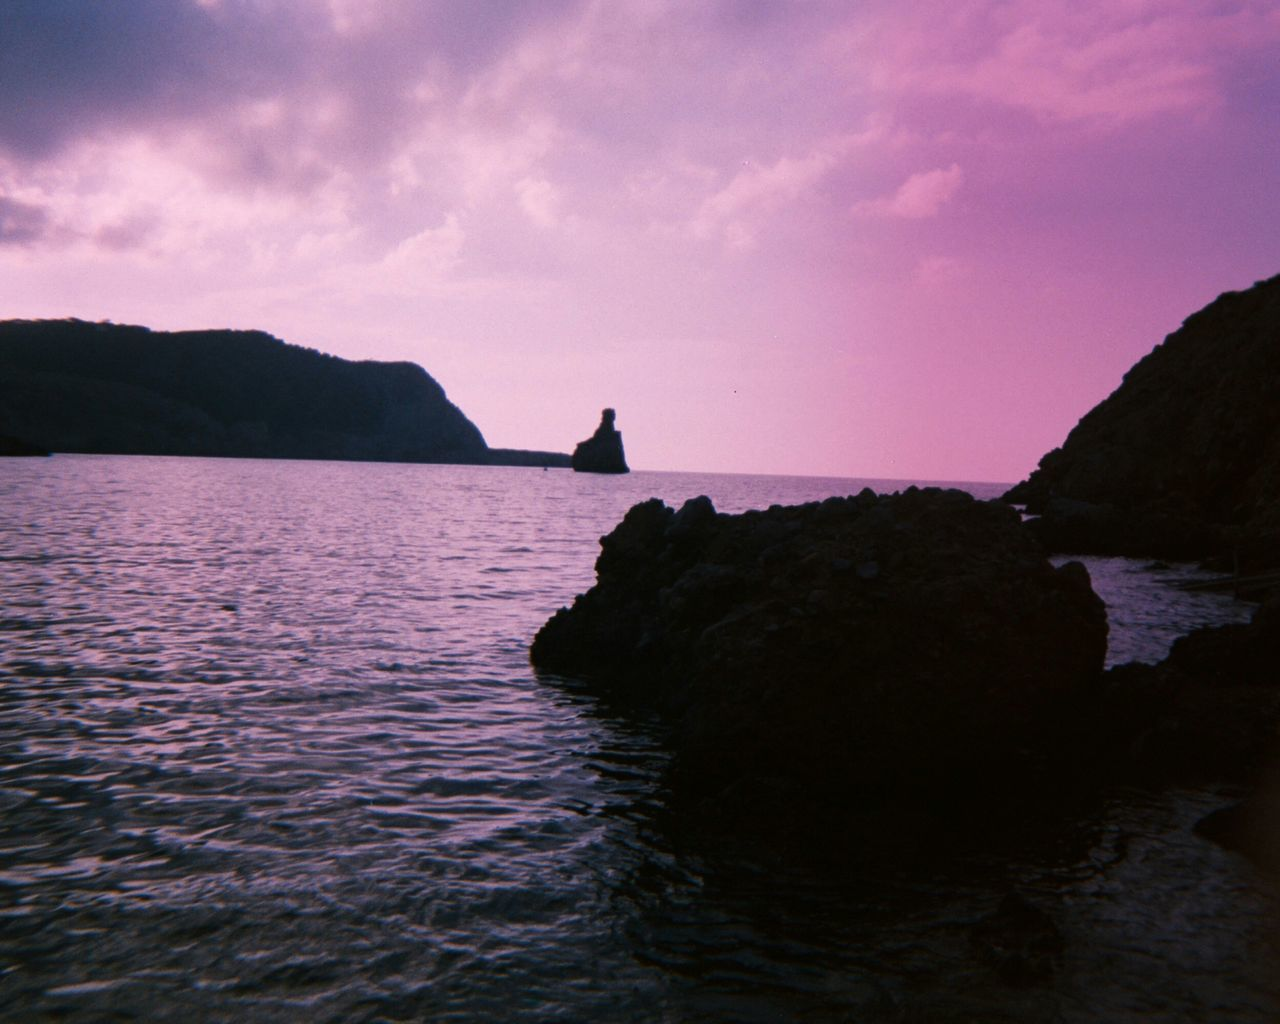 Ibiza Sunset Beauty In Nature No People Sunset_collection Rock Formation Sea And Sky Imperfectly Perfect Analogue Photography Unedited Film Photography Nature_collection Light And Shadow Ibiza Water_collection Silhouette_collection Purple Hue Travel Destinations Disposablecamera Seaside Ibiza Beach Finding New Frontiers Millennial Pink The Secret Spaces